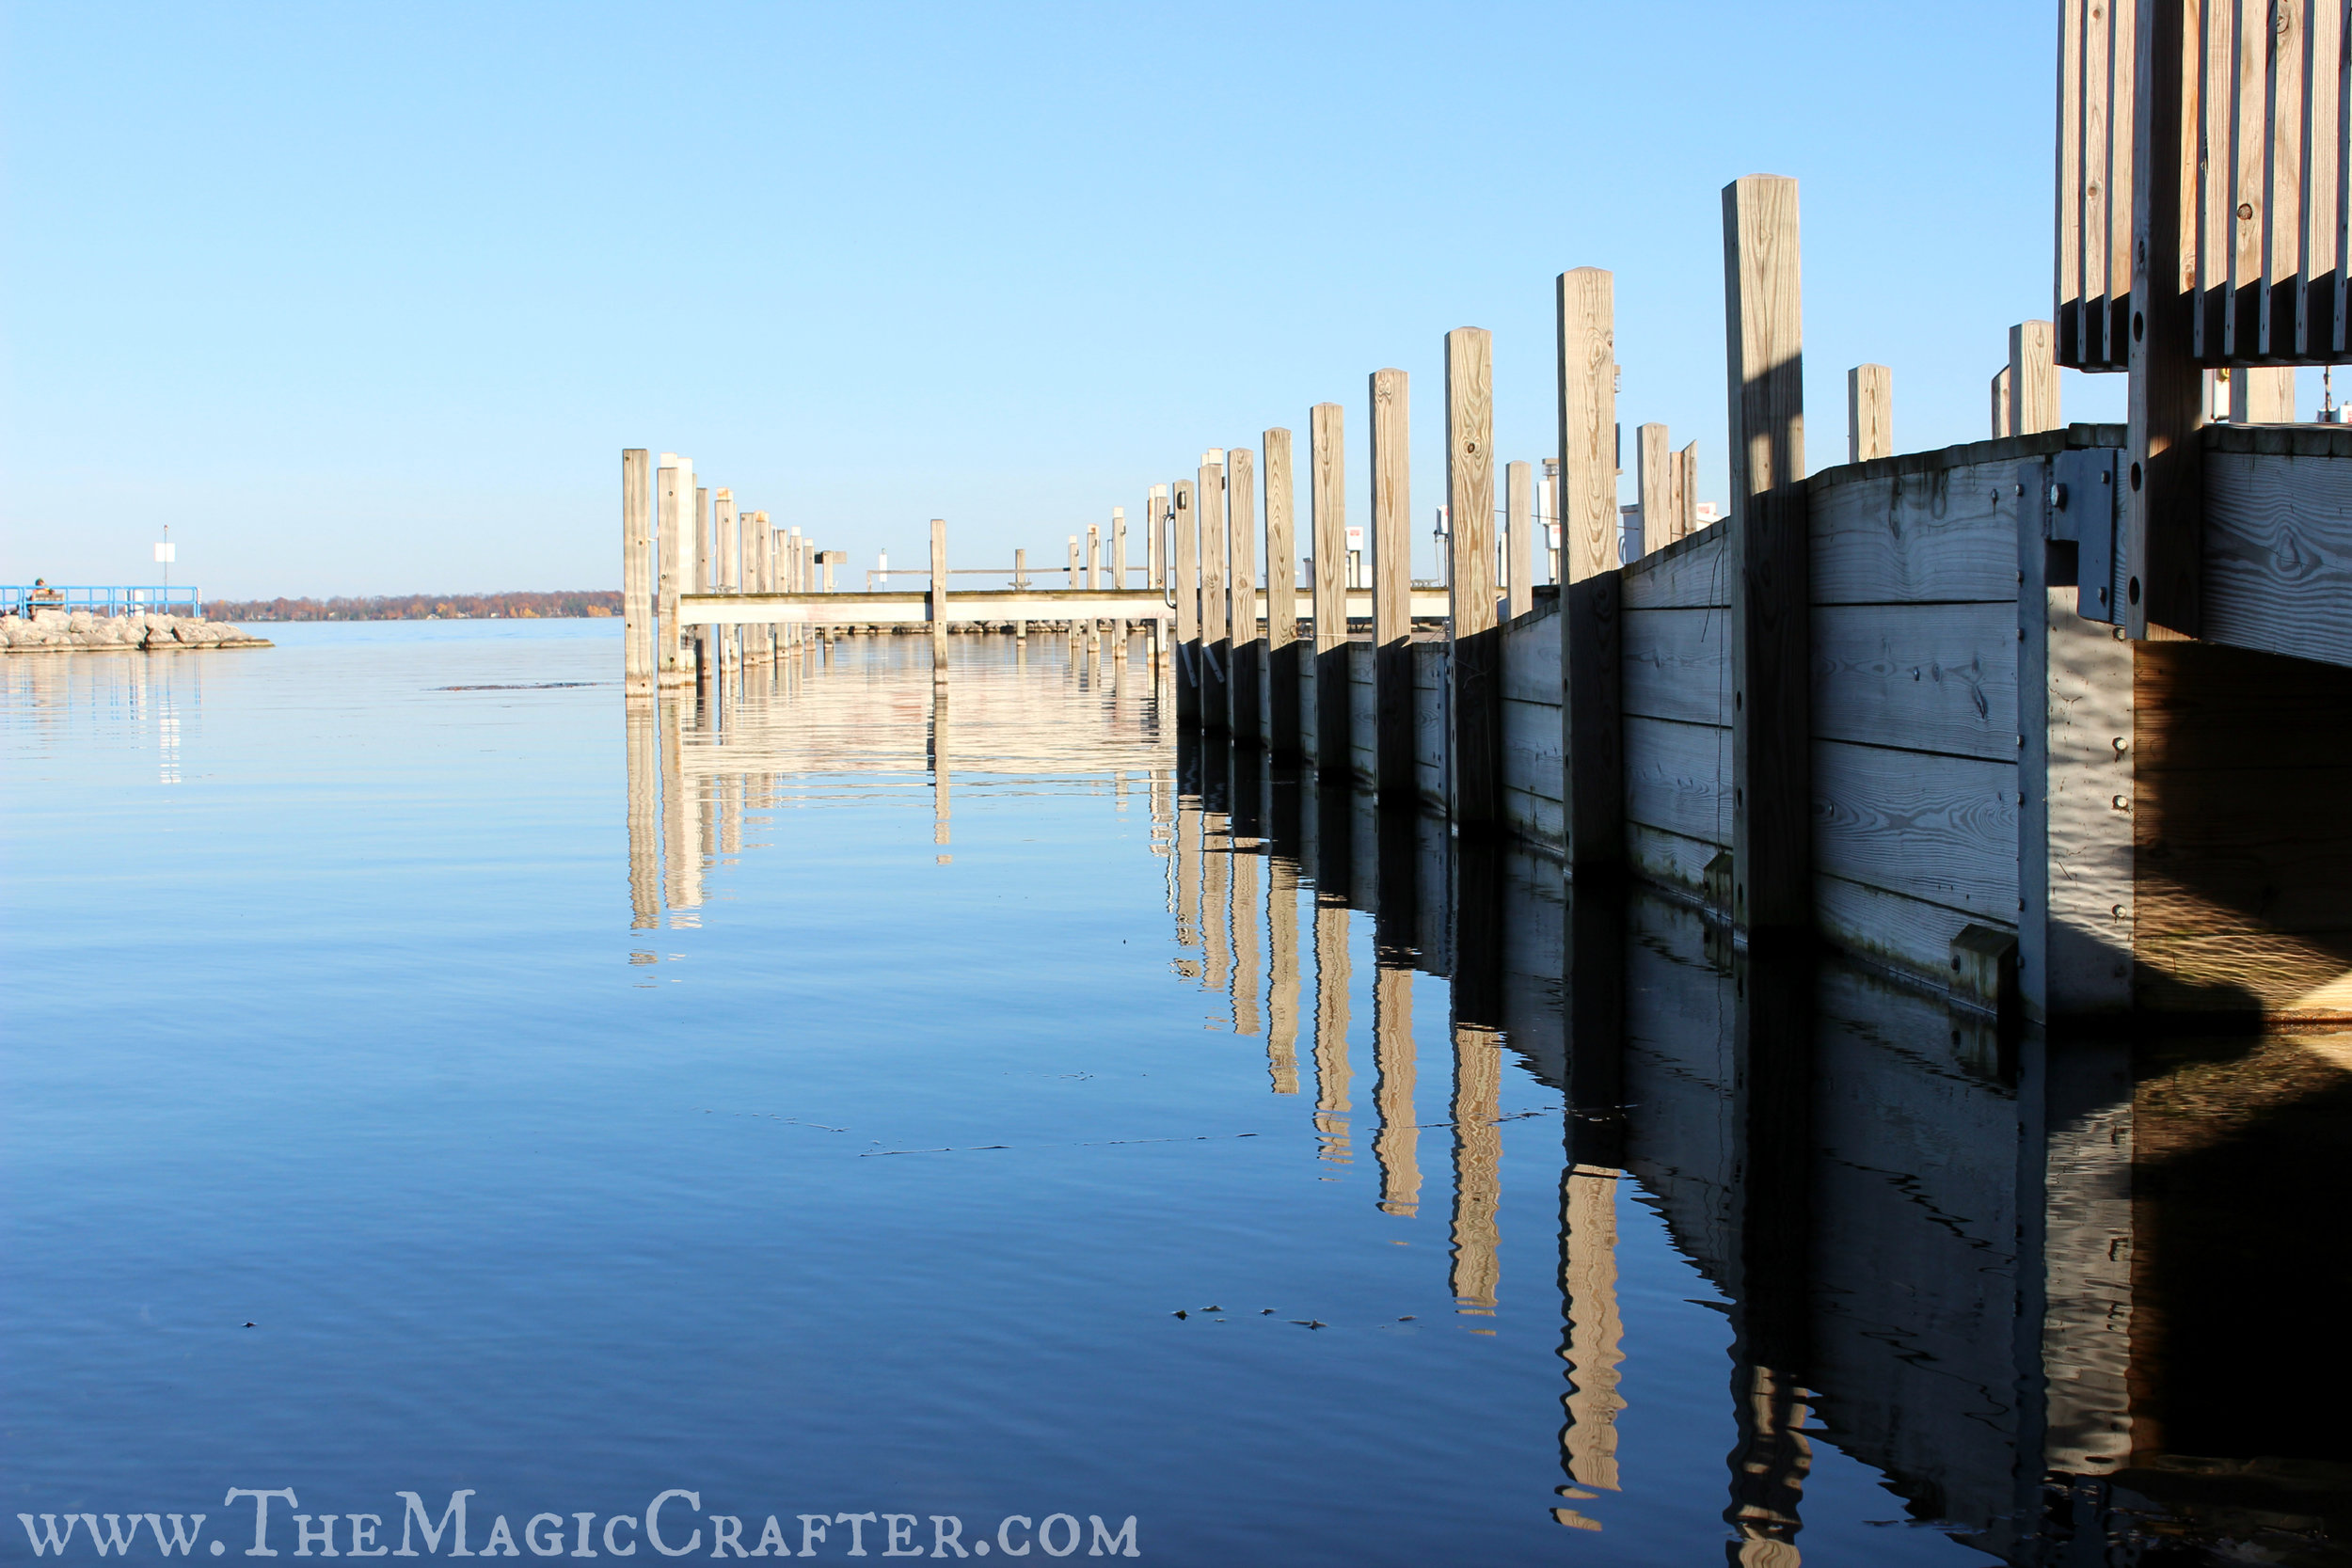 It's hard to think that just a few weeks ago these docks were still flooded with boats! I wonder where everyone ventured off to? I wonder how they are doing?